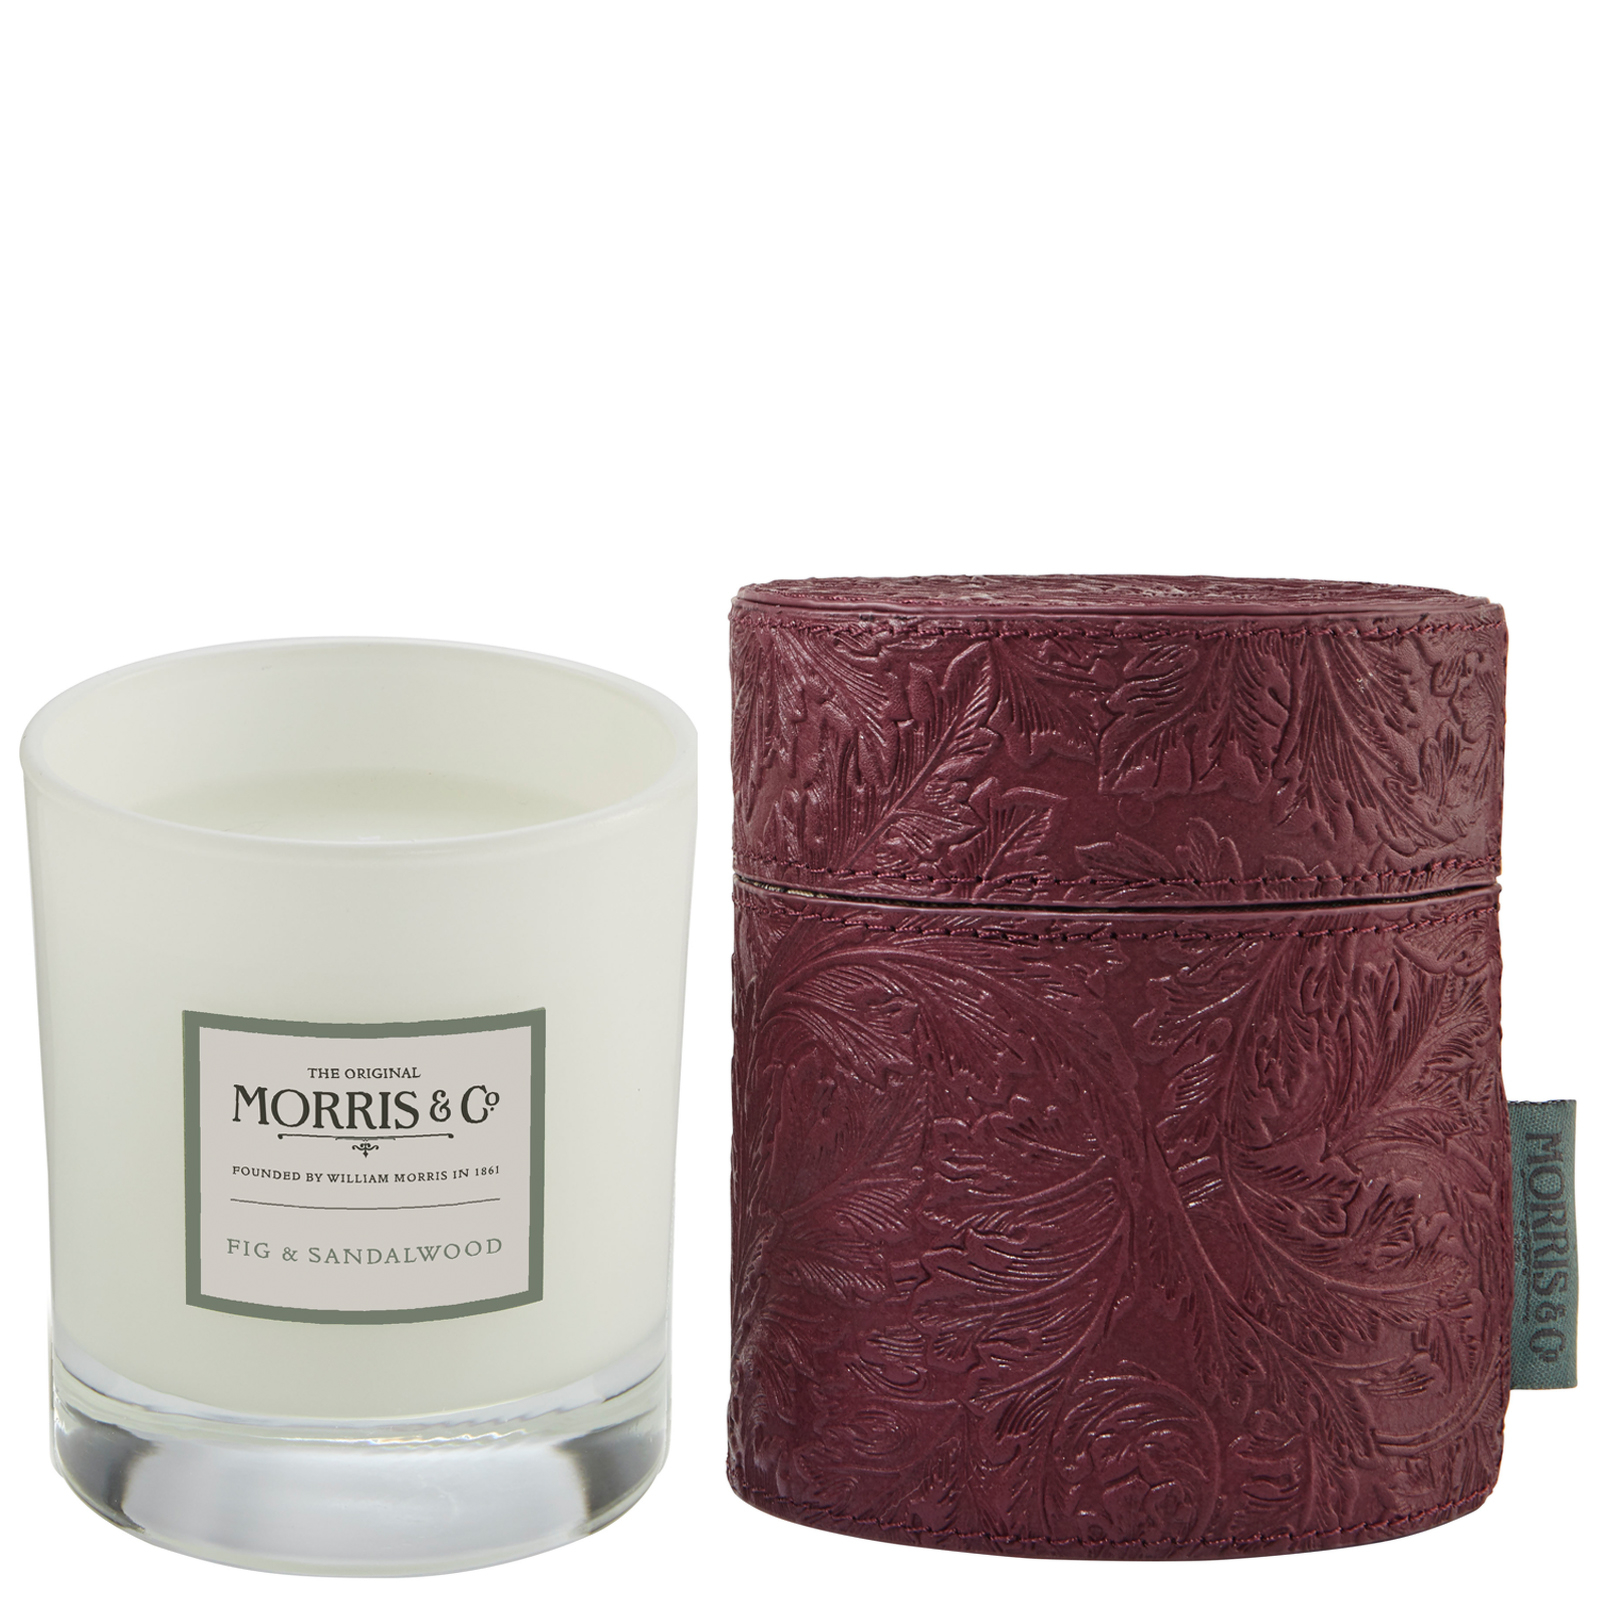 MORRIS & Co Fig & Sandalwood Scented Candle in Fabric Drum 180g